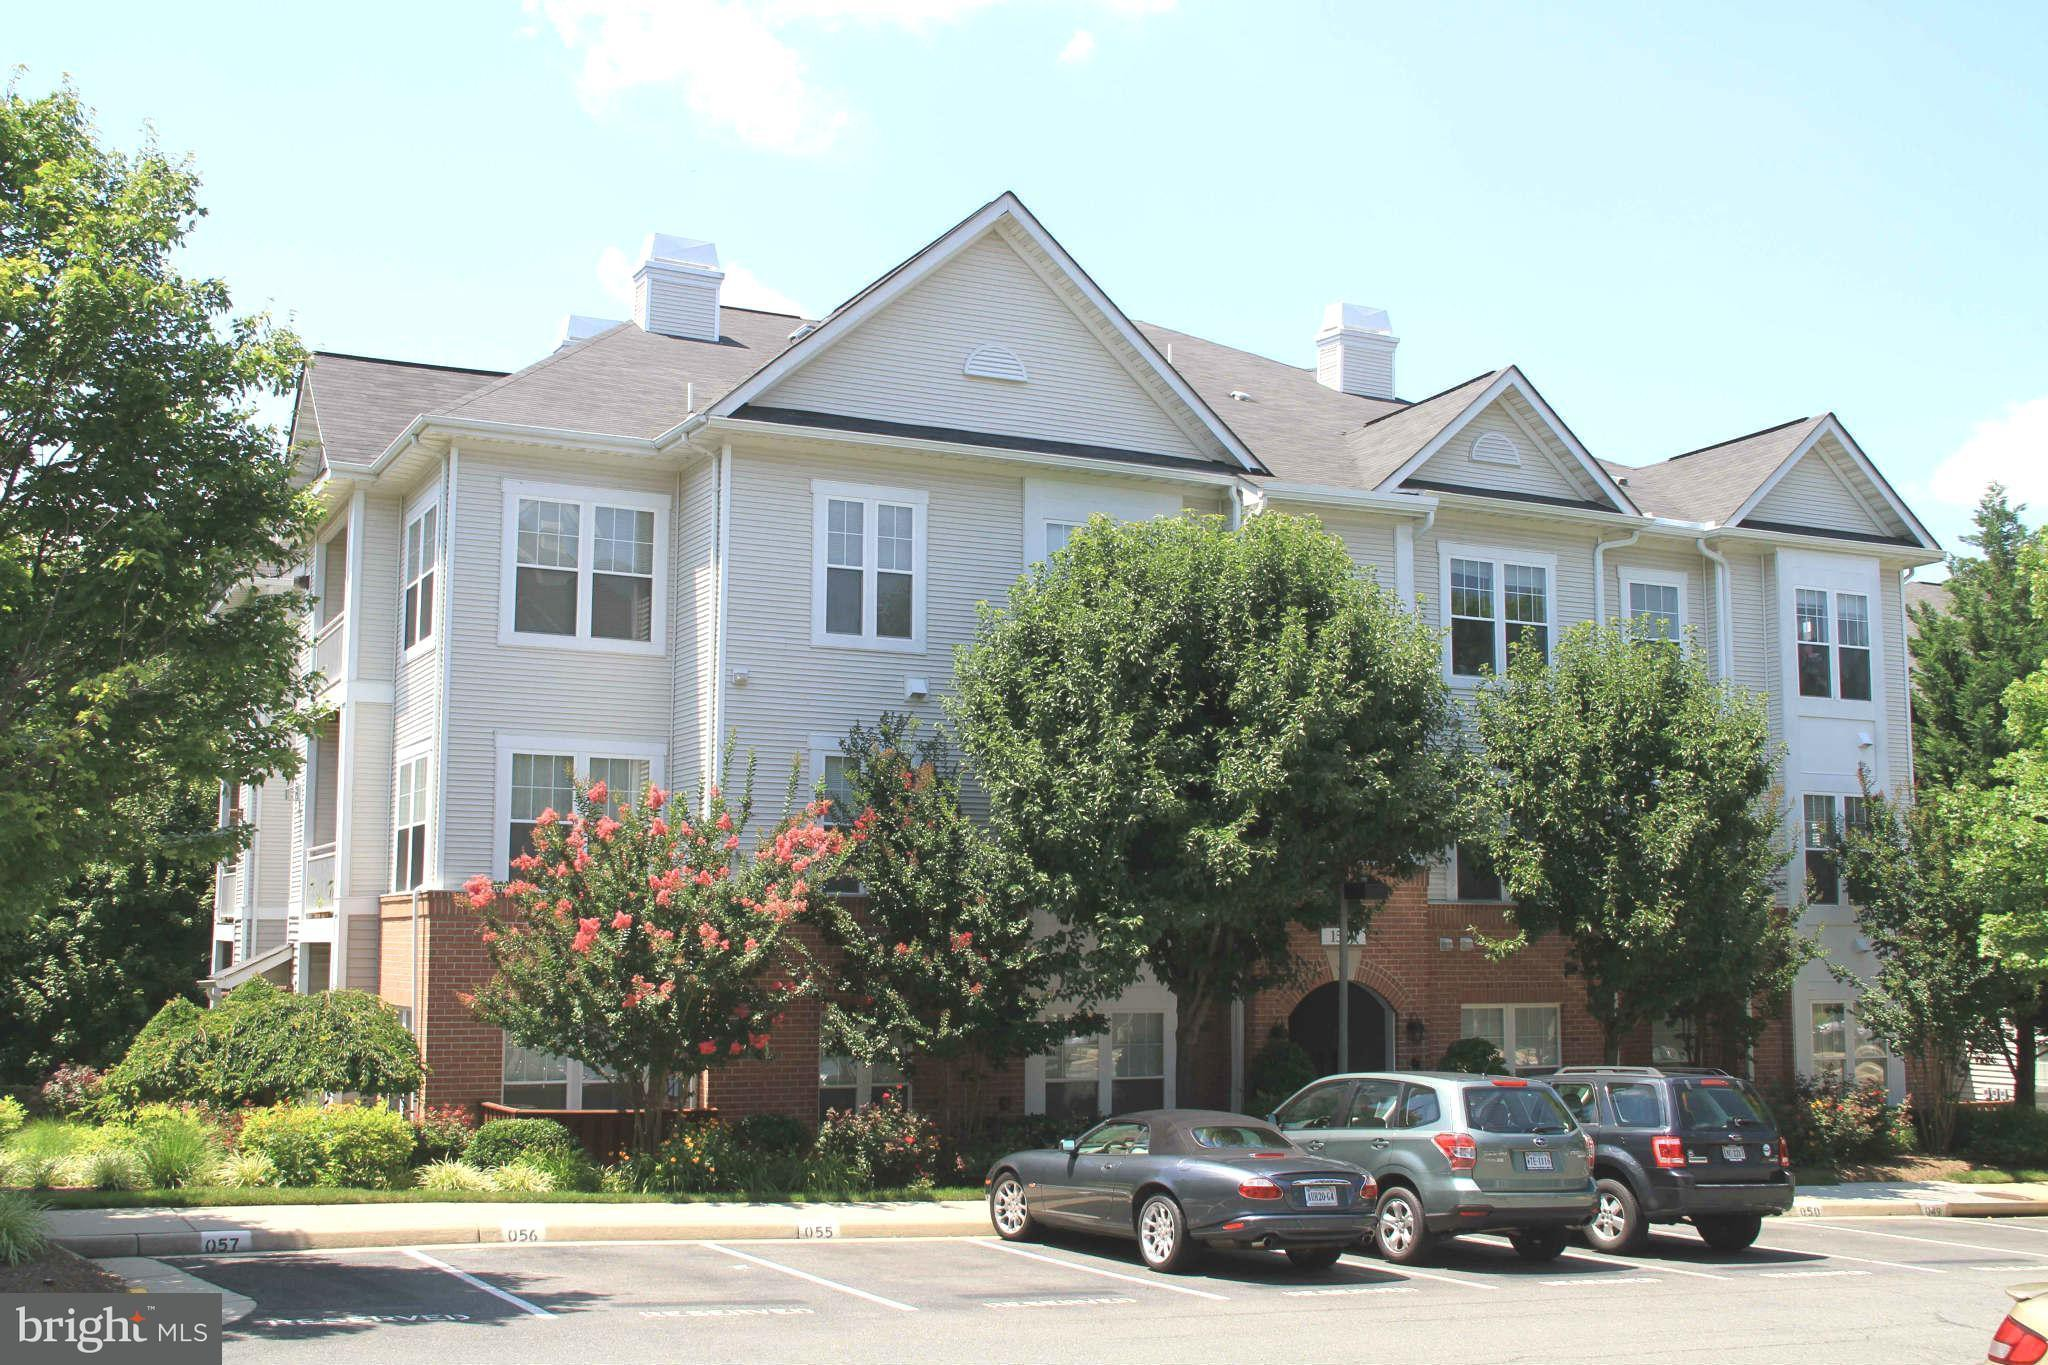 1520 North Point Dr #301, Reston, VA 20194 2 Bedroom Condo For Rent For  $1,700/month   Zumper